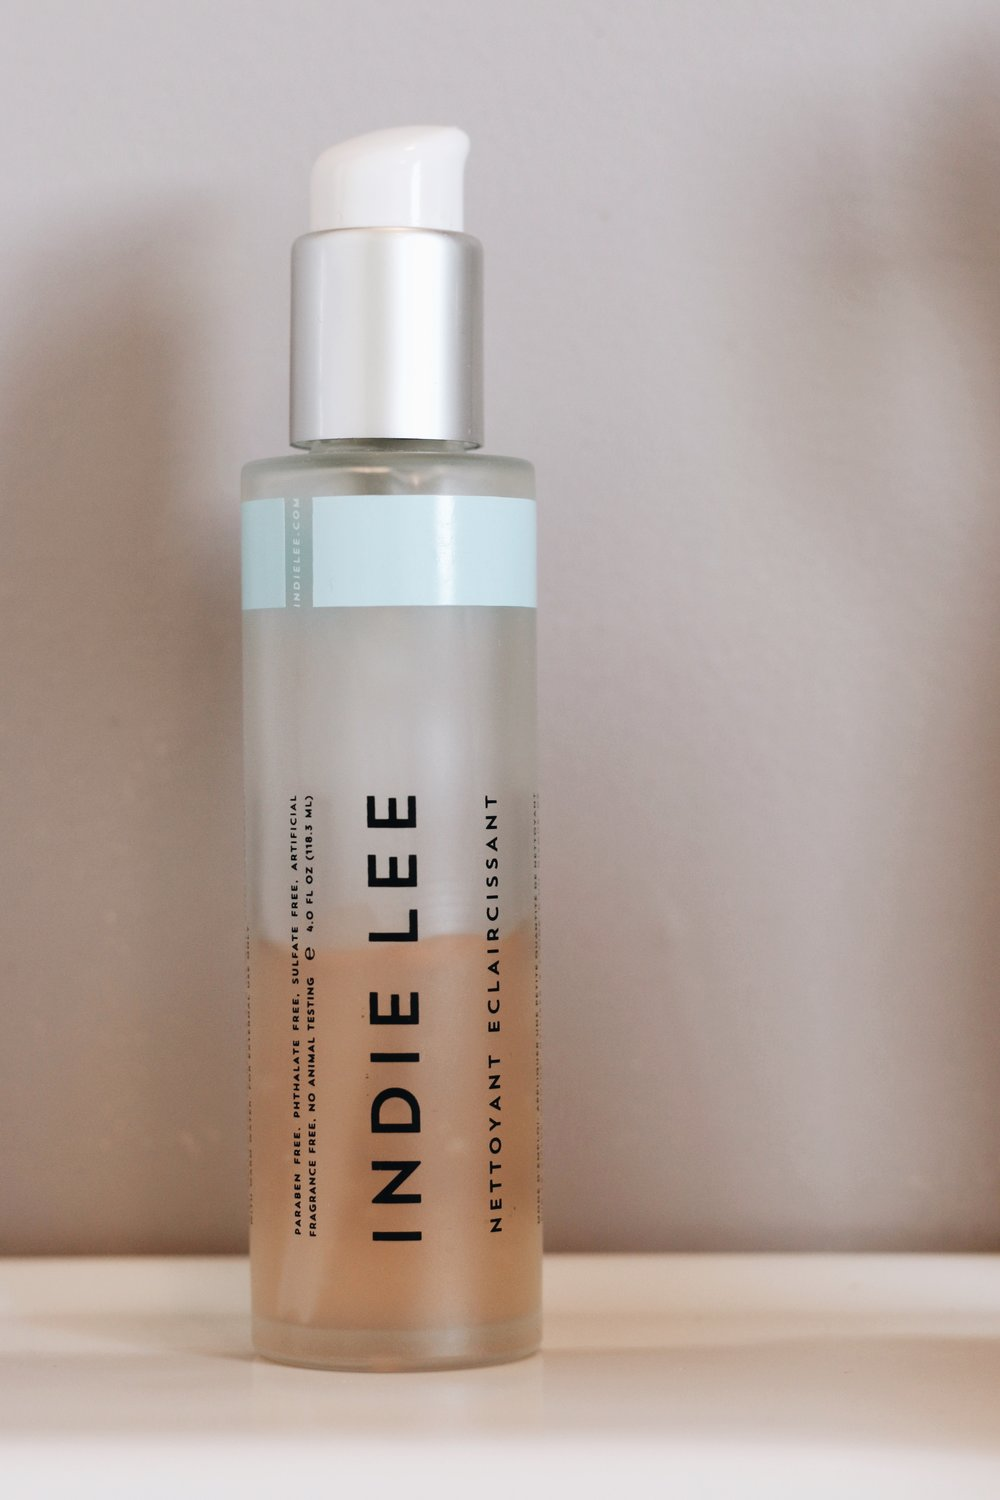 2. - Indie Lee Brightening Cleanser - Was recently introduced to Indie Lee and I'm hooked. All natural, basic cleanser that really feels like it gets in there and gets the dirt out and the makeup off.